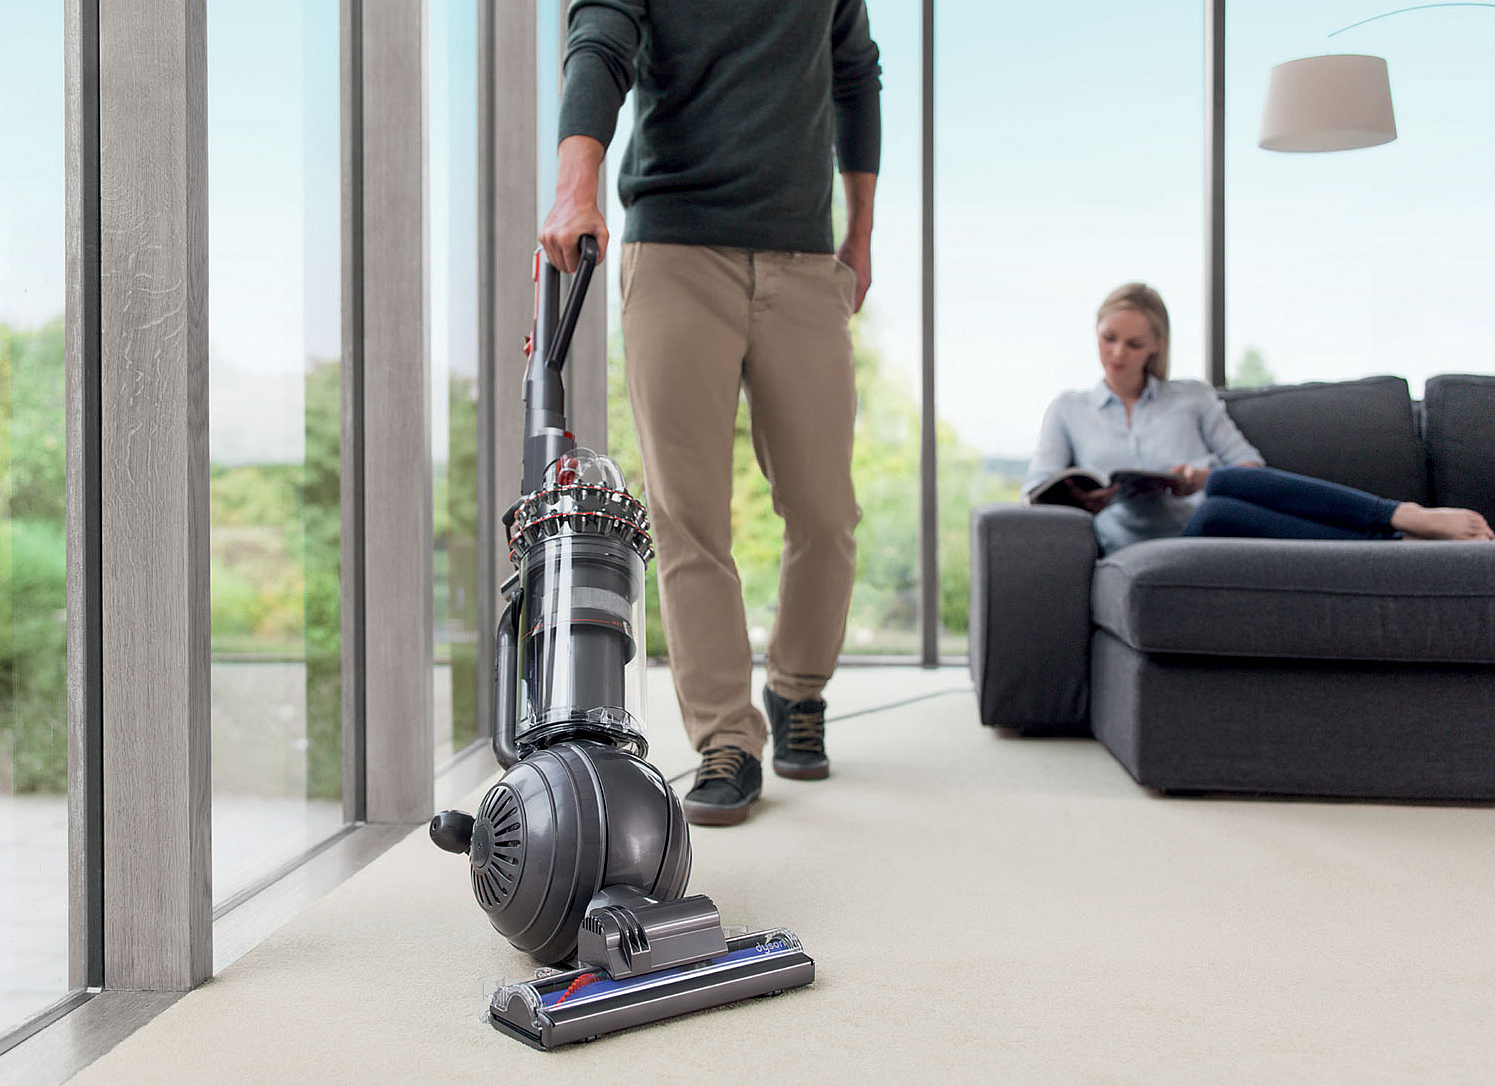 aspirateur vertical Animal Cinetic DC77 de Dyson